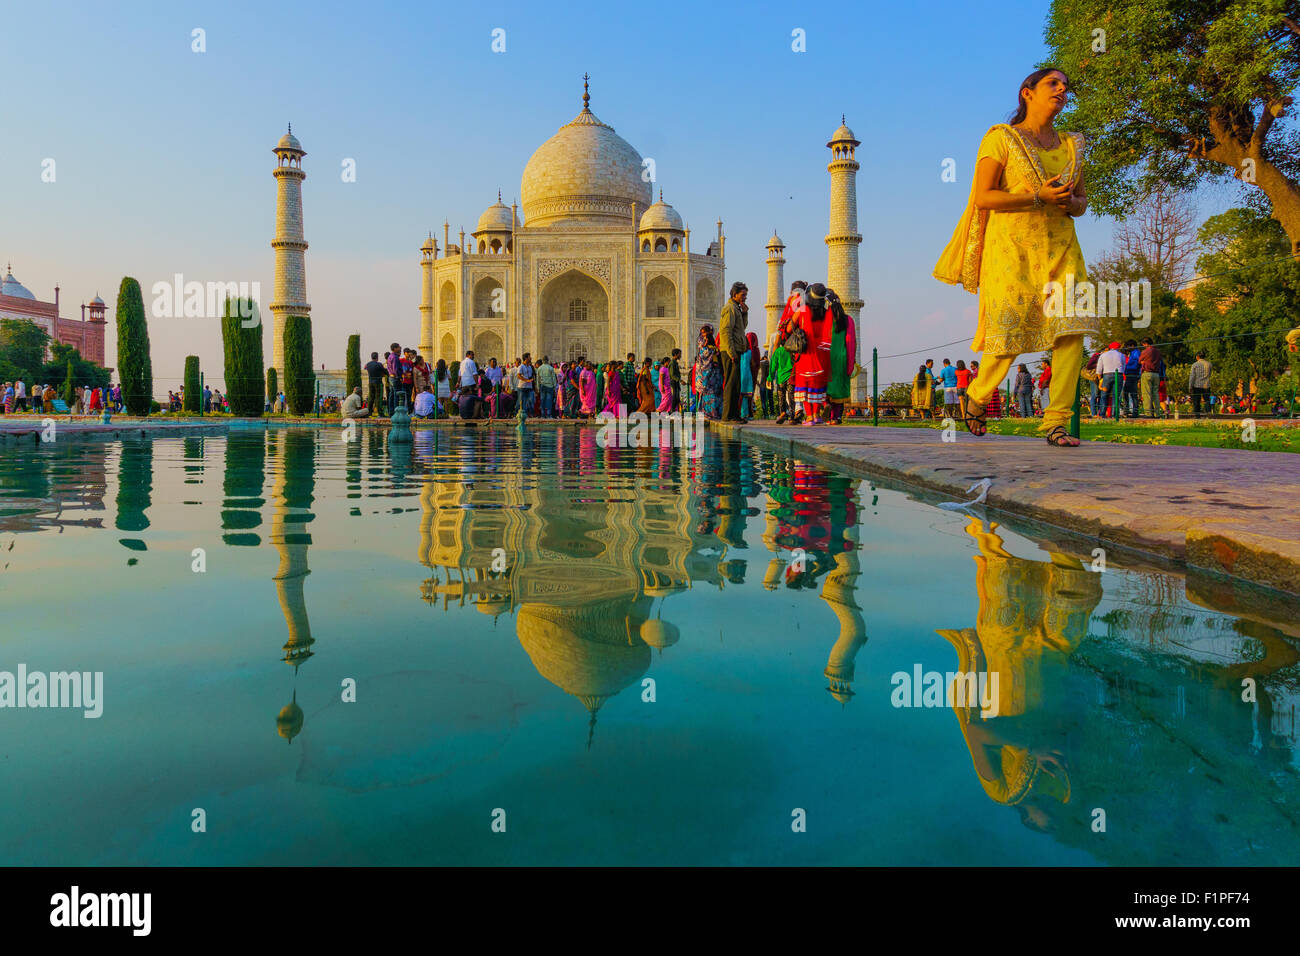 Visitors walking along the pool in front of Taj Mahal, the world heritage monument. - Stock Image